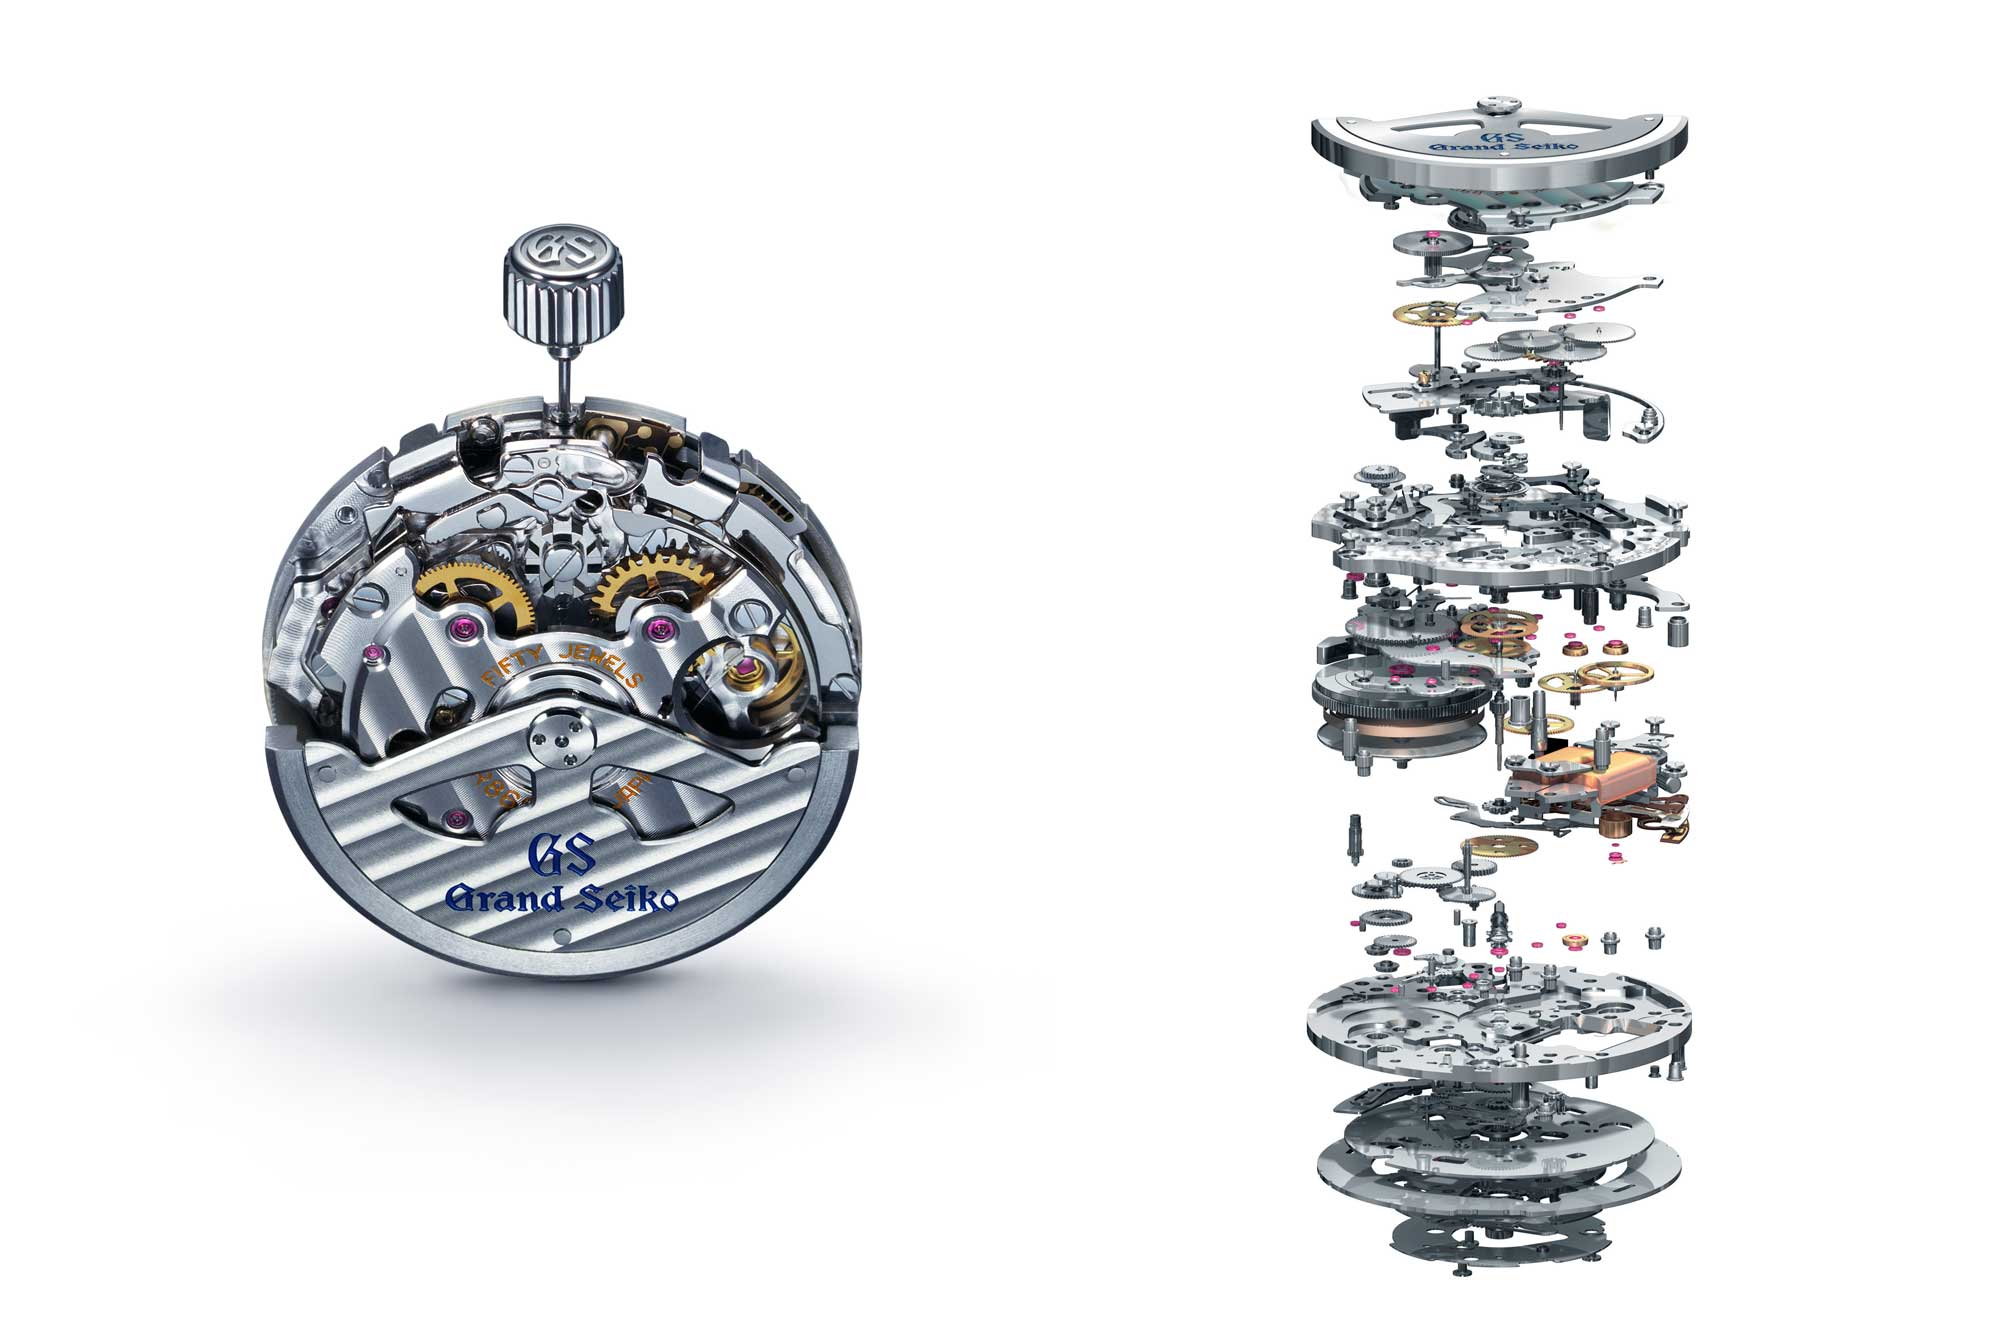 Grand Seiko caliber 9R86 alongside an exploded view of the movement.